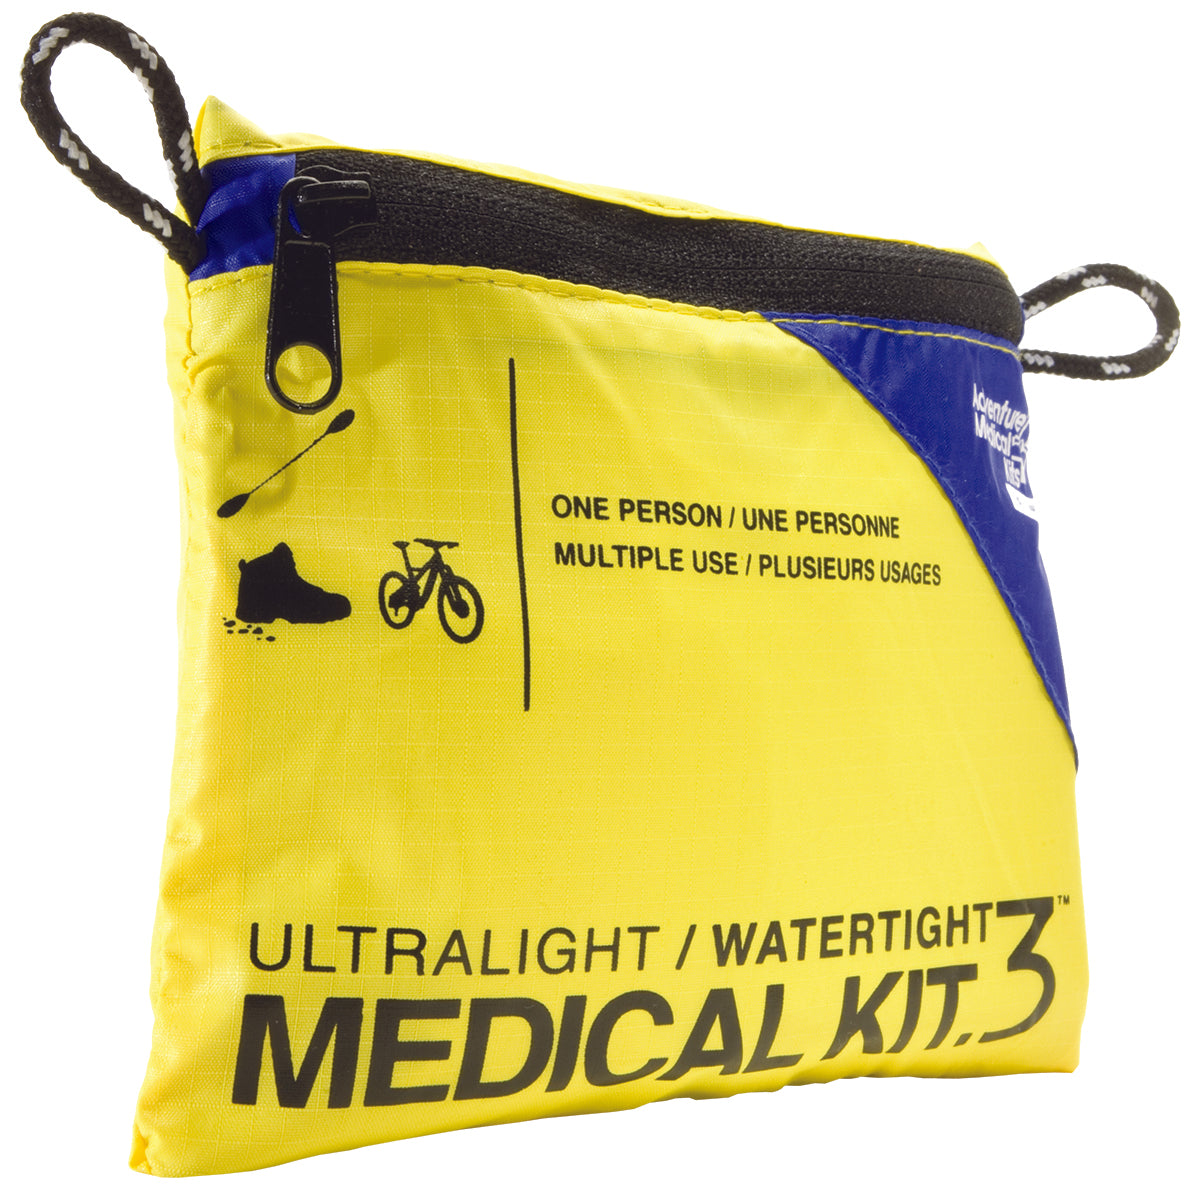 AMK Ultralight / Watertight .3